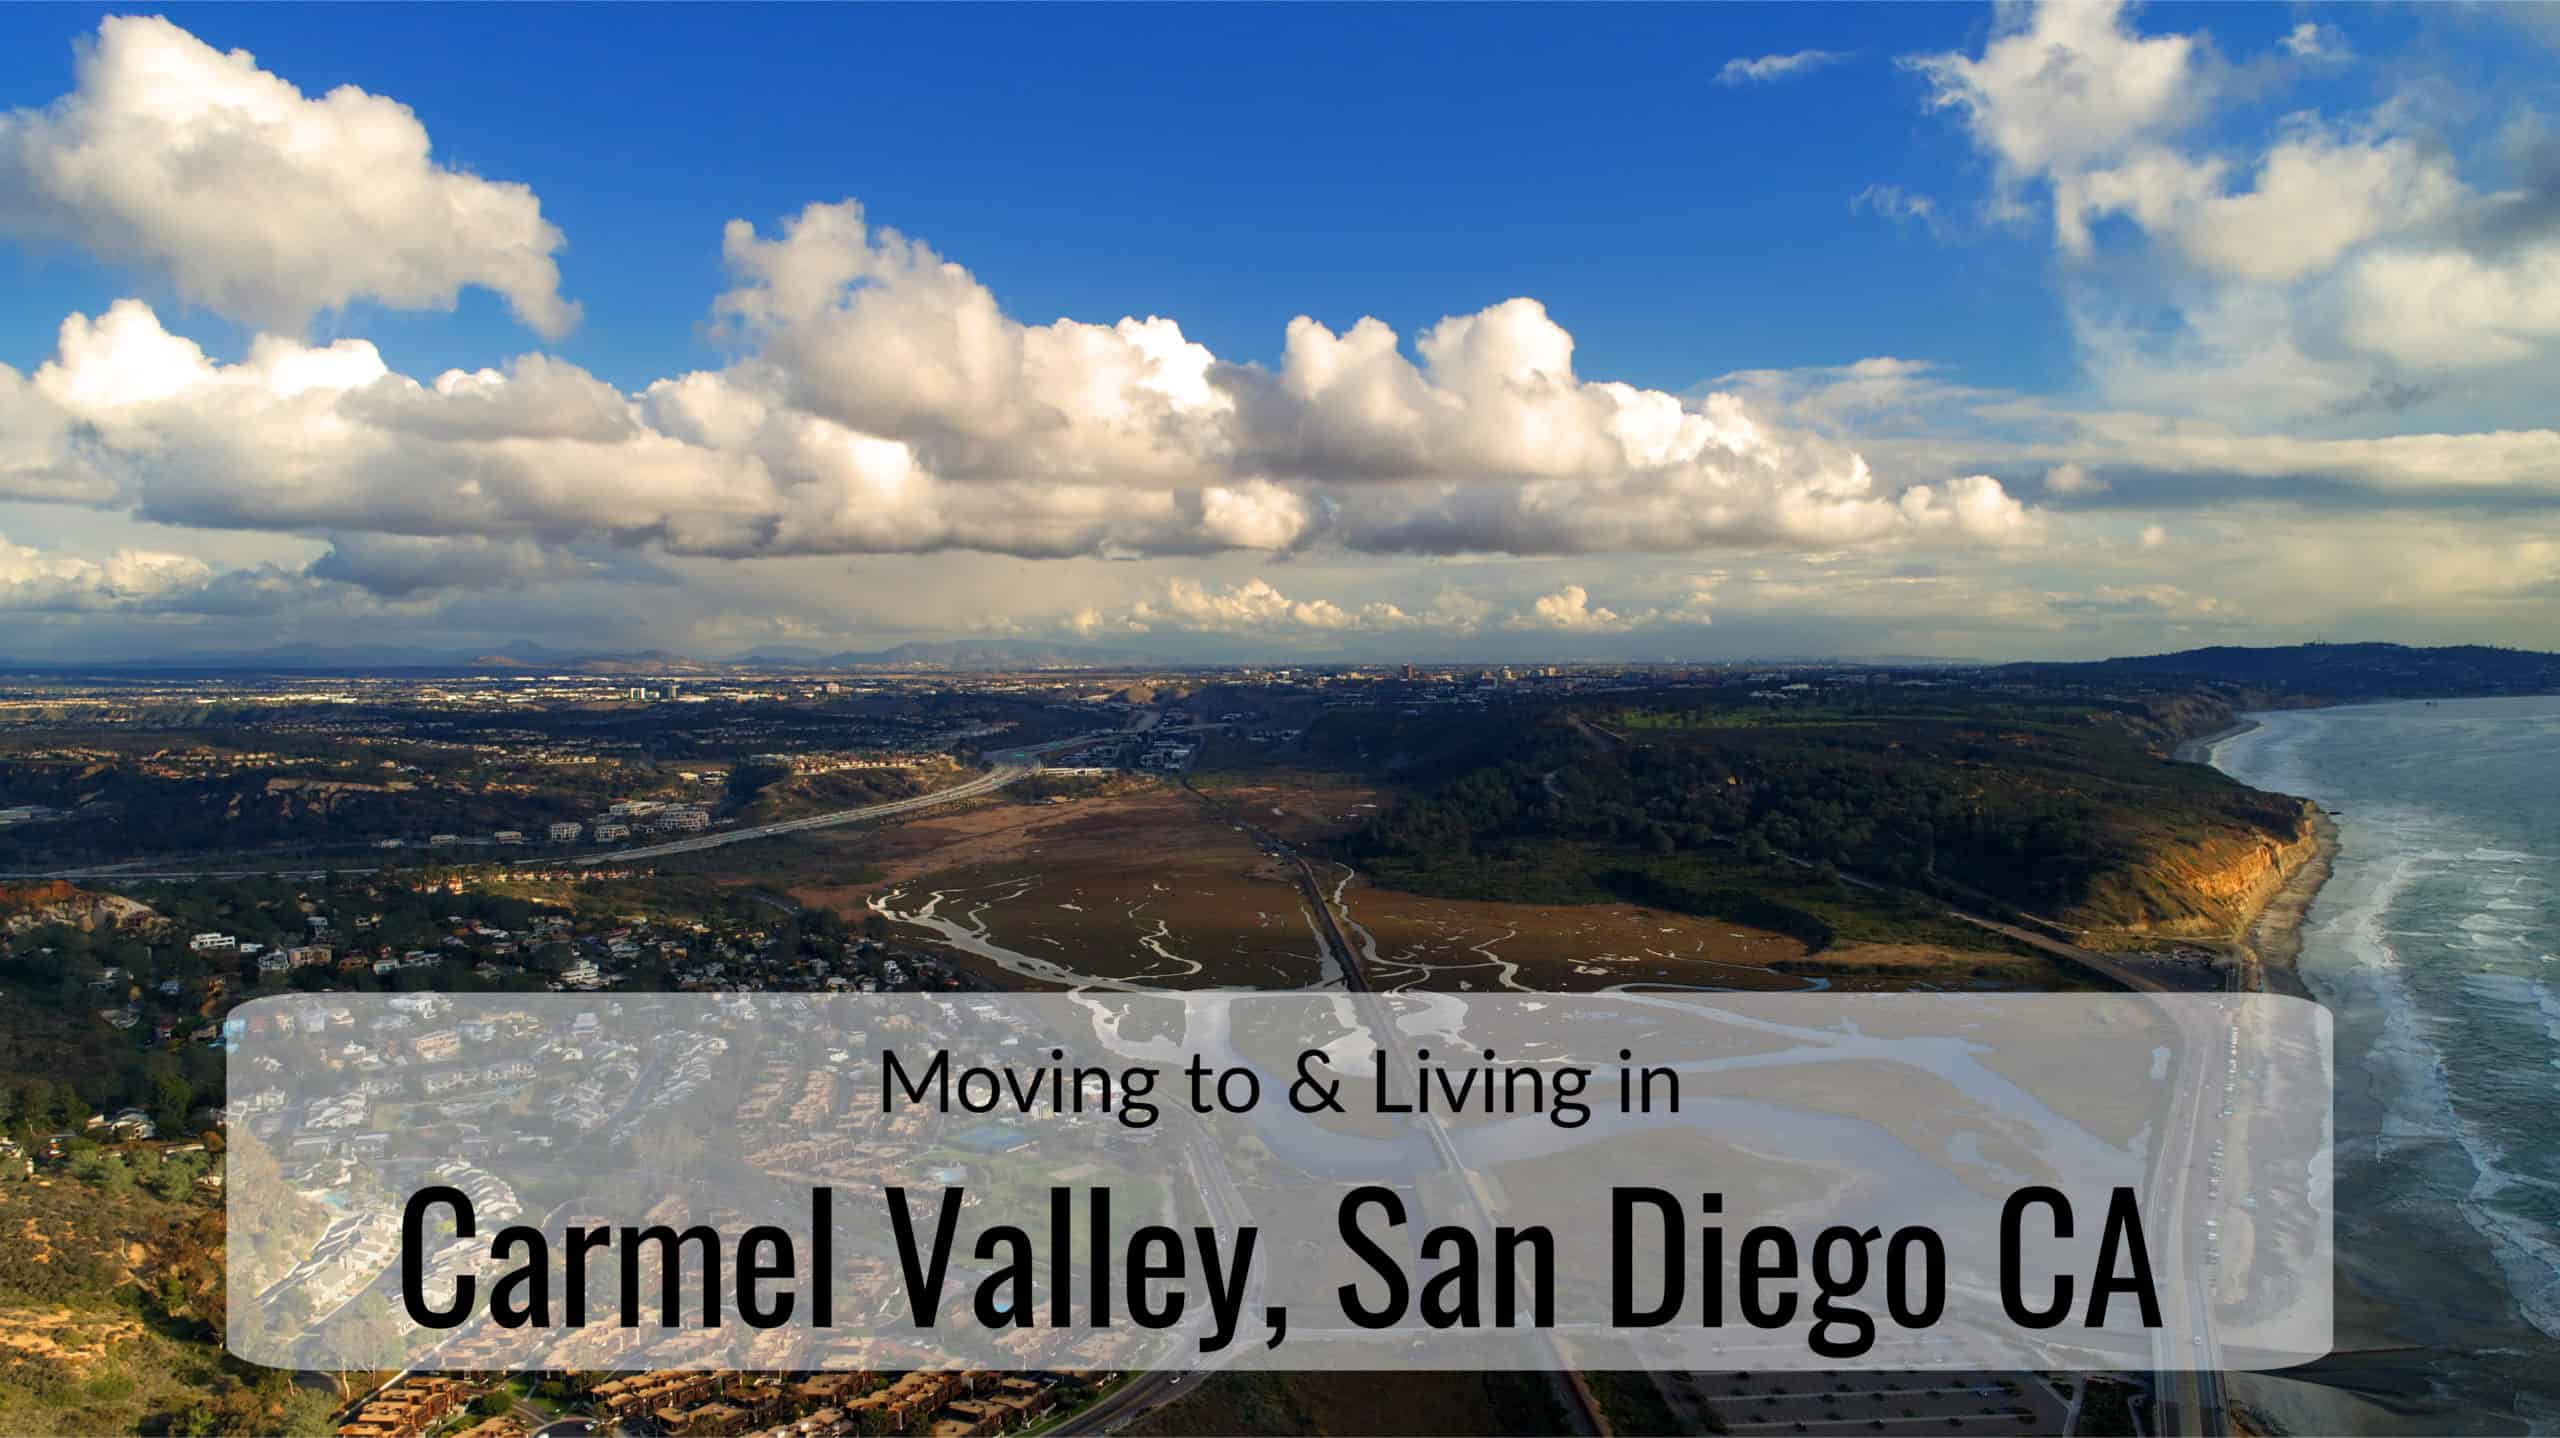 Arial view of Carmel Valley, San Diego